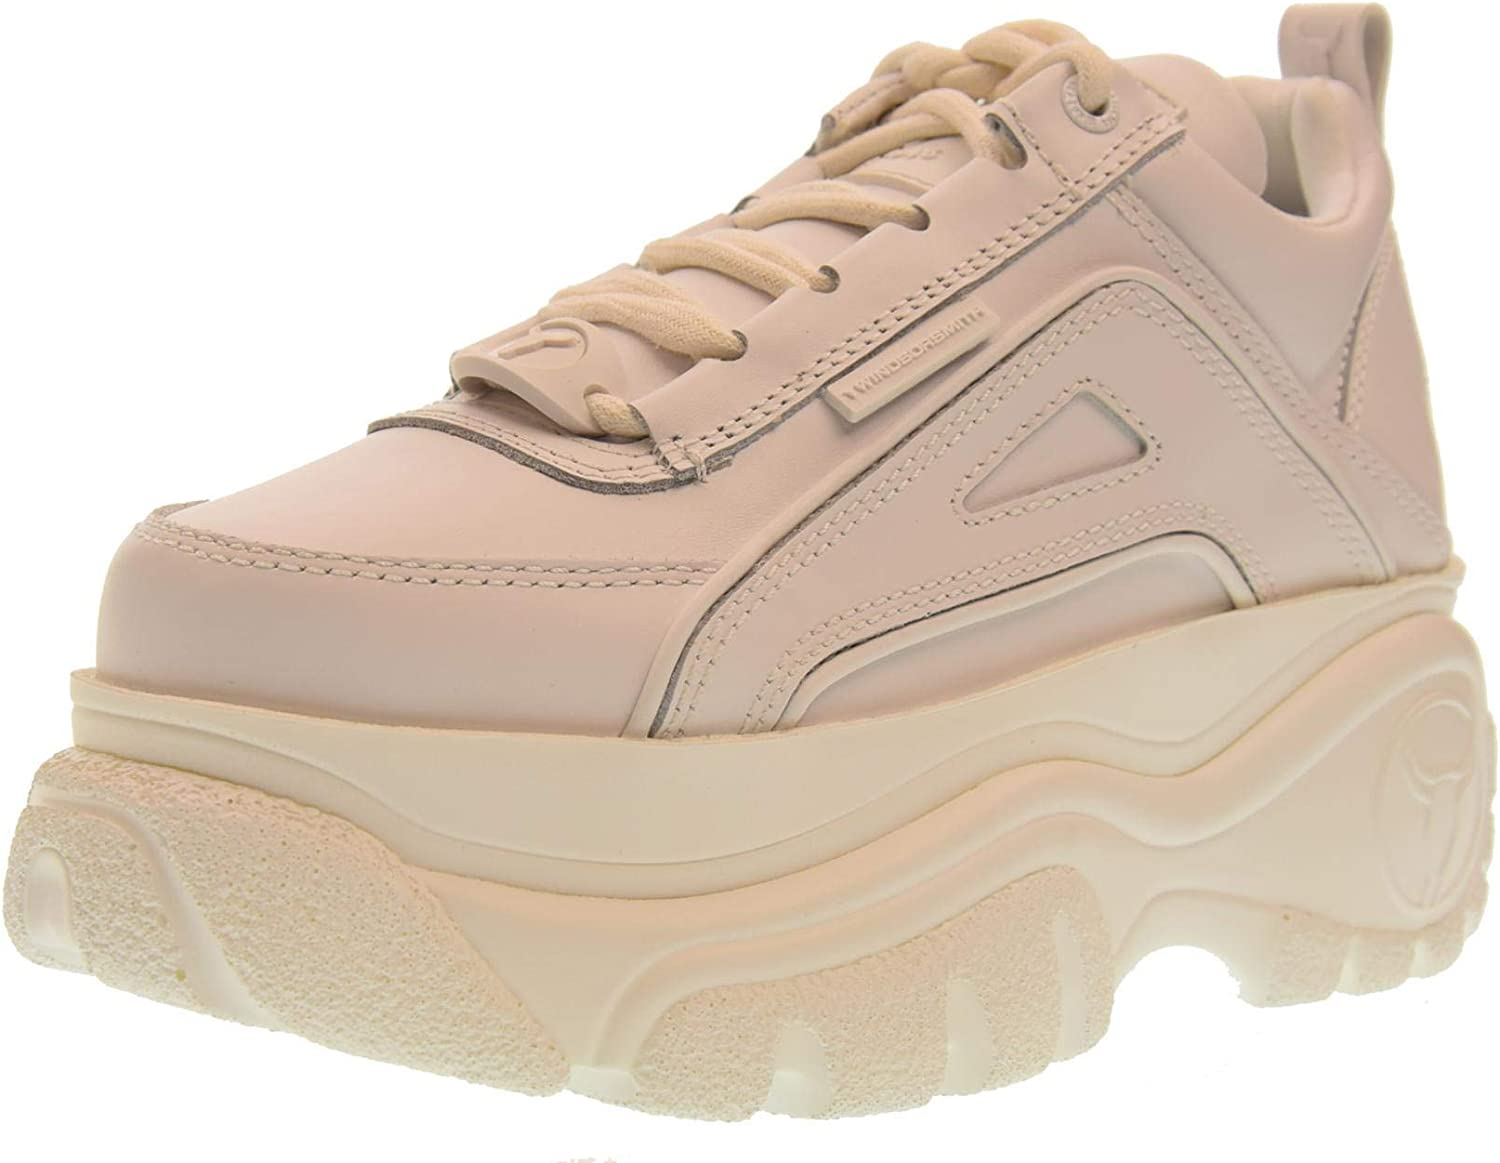 Windsor Smith Sneakers Woman Shoes with